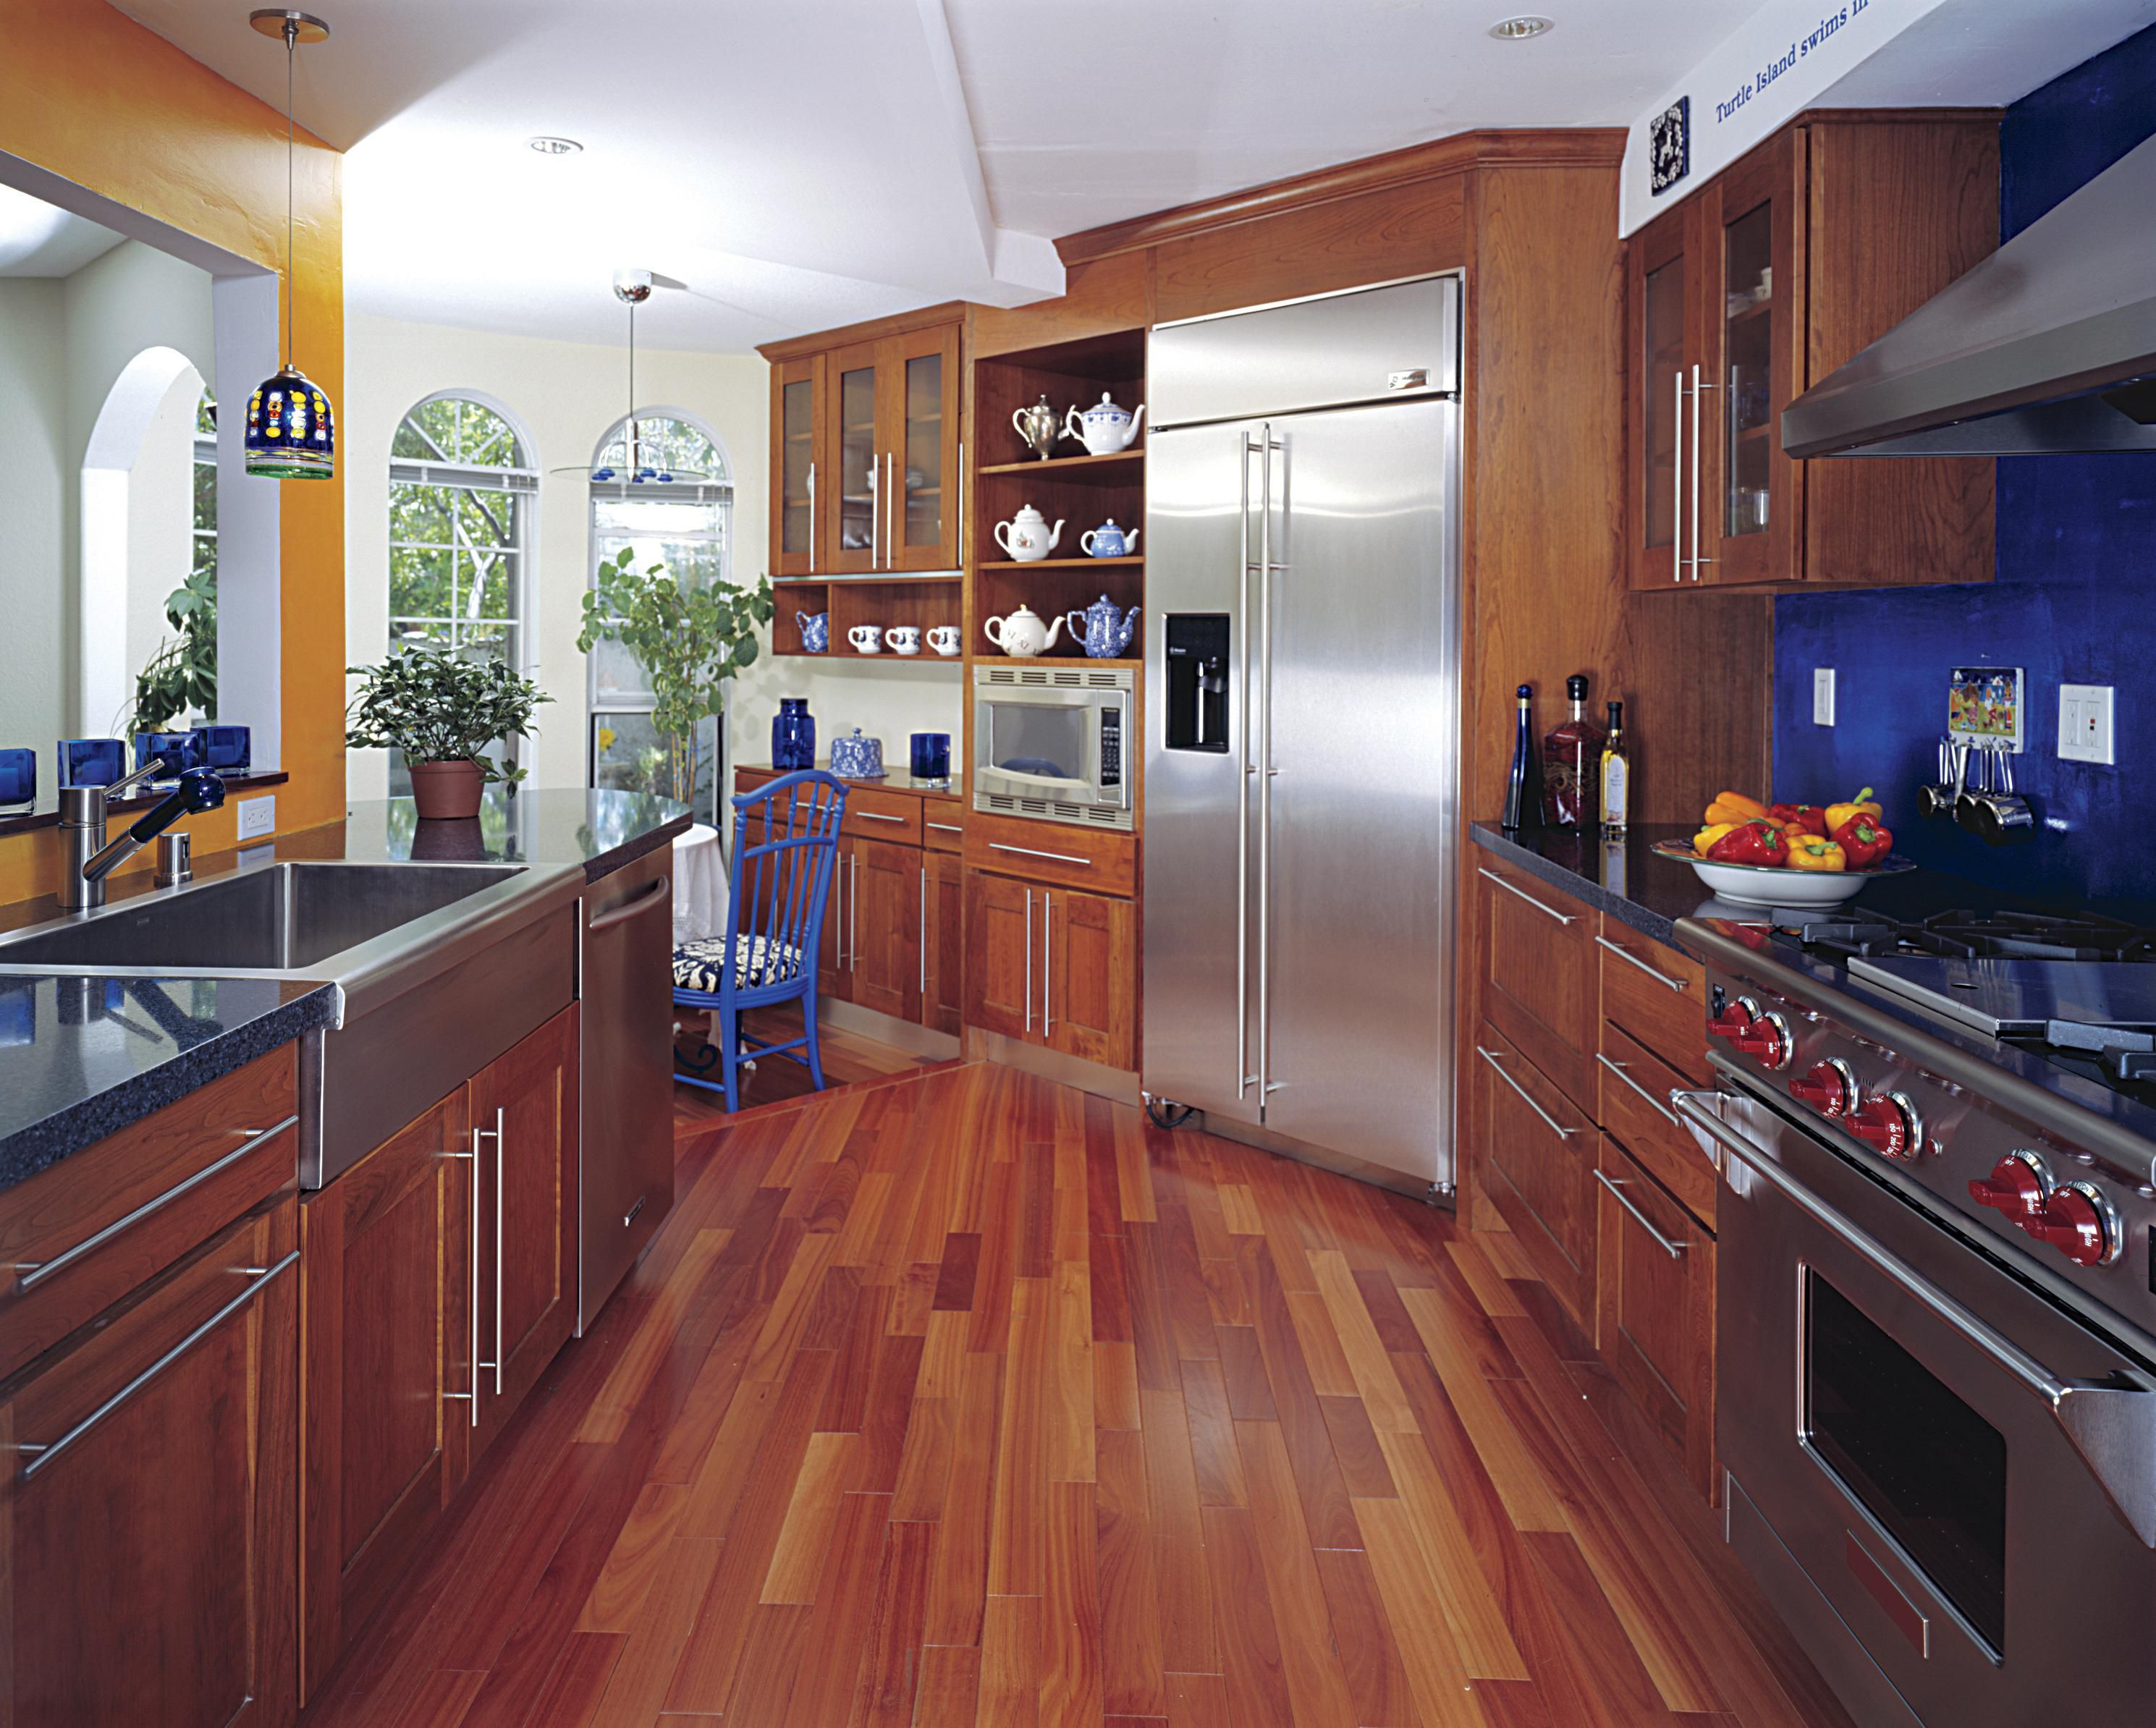 how to fix gouges in hardwood floors of hardwood floor in a kitchen is this allowed regarding 186828472 56a49f3a5f9b58b7d0d7e142